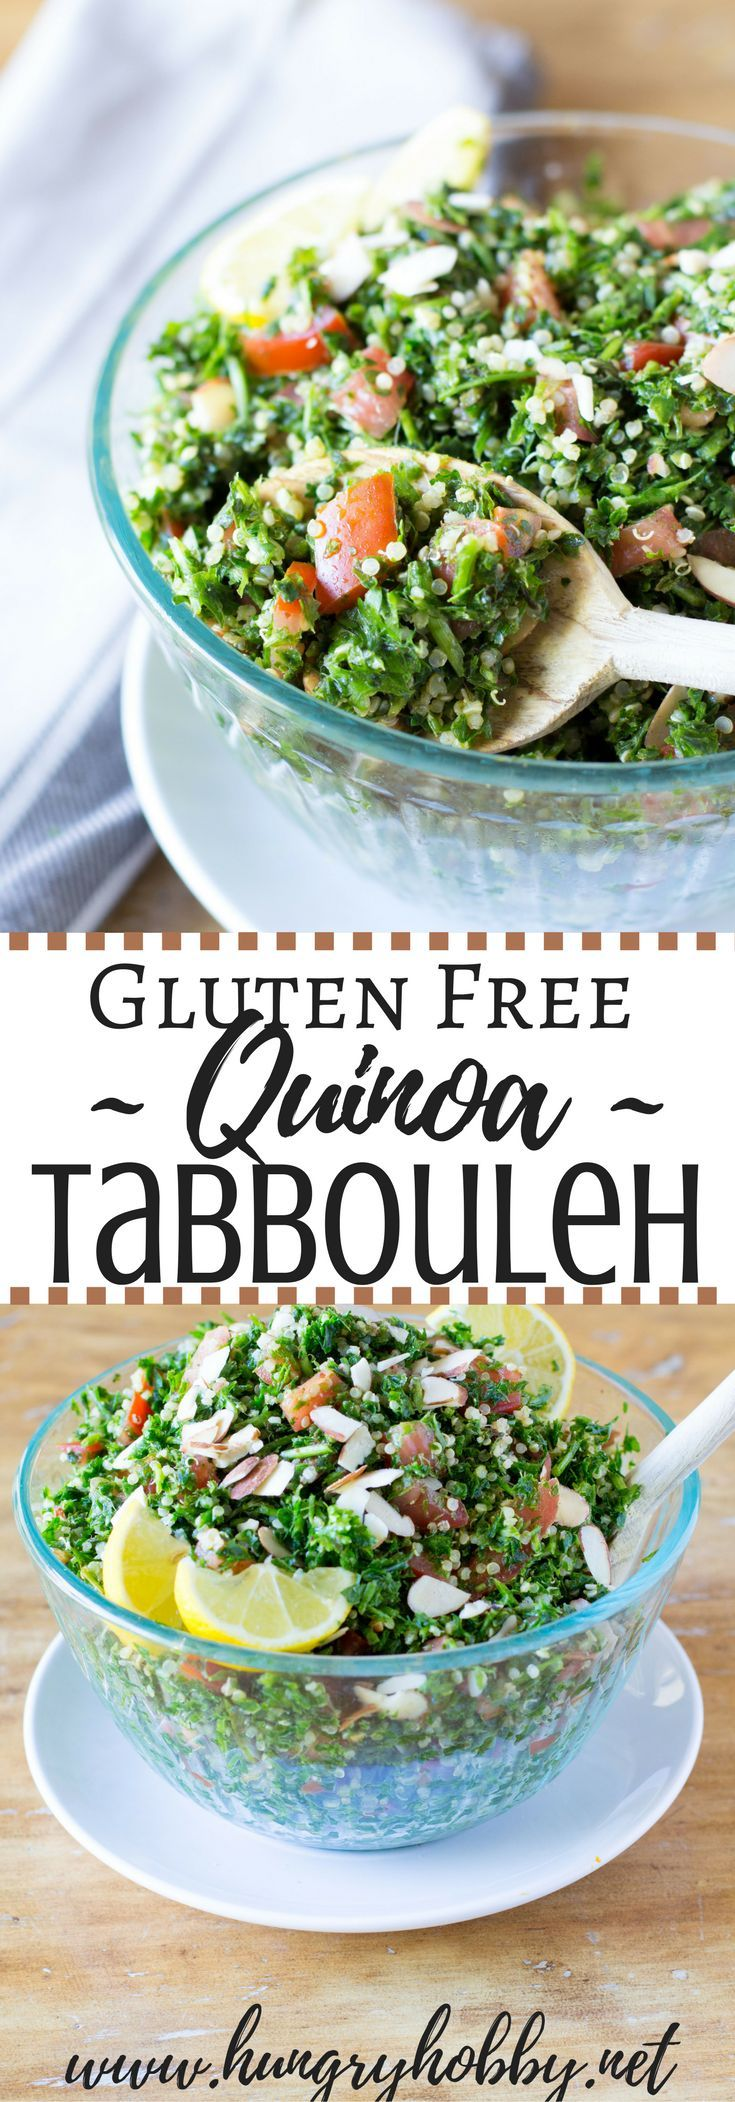 """Gluten Free Quinoa Tabbouleh Salad (Tabouli) """"parsley & quinoa salad"""" is a refreshing vegetarian side dish, dip, or addition to another recipe!"""